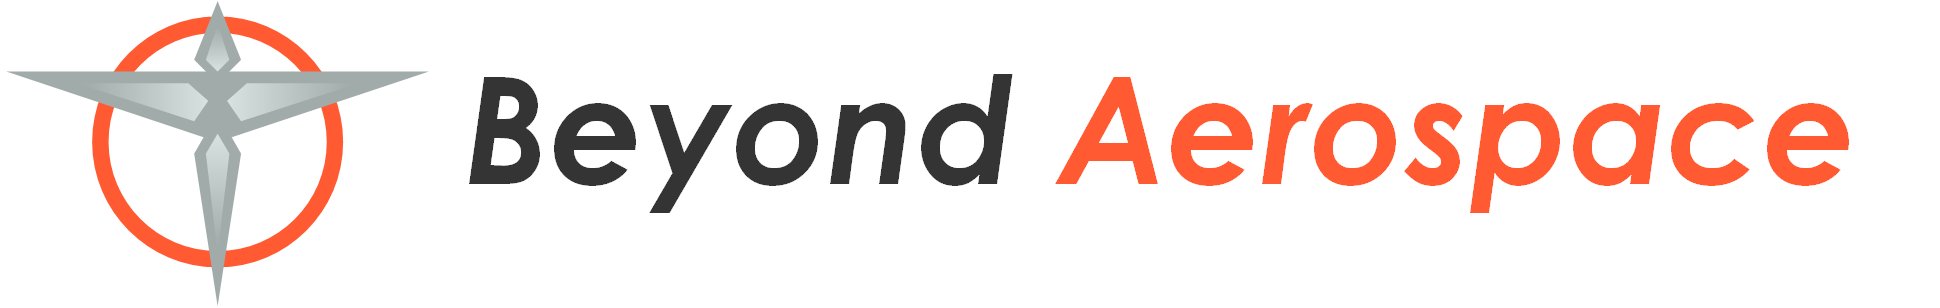 Beyond Aerospace Ltd.